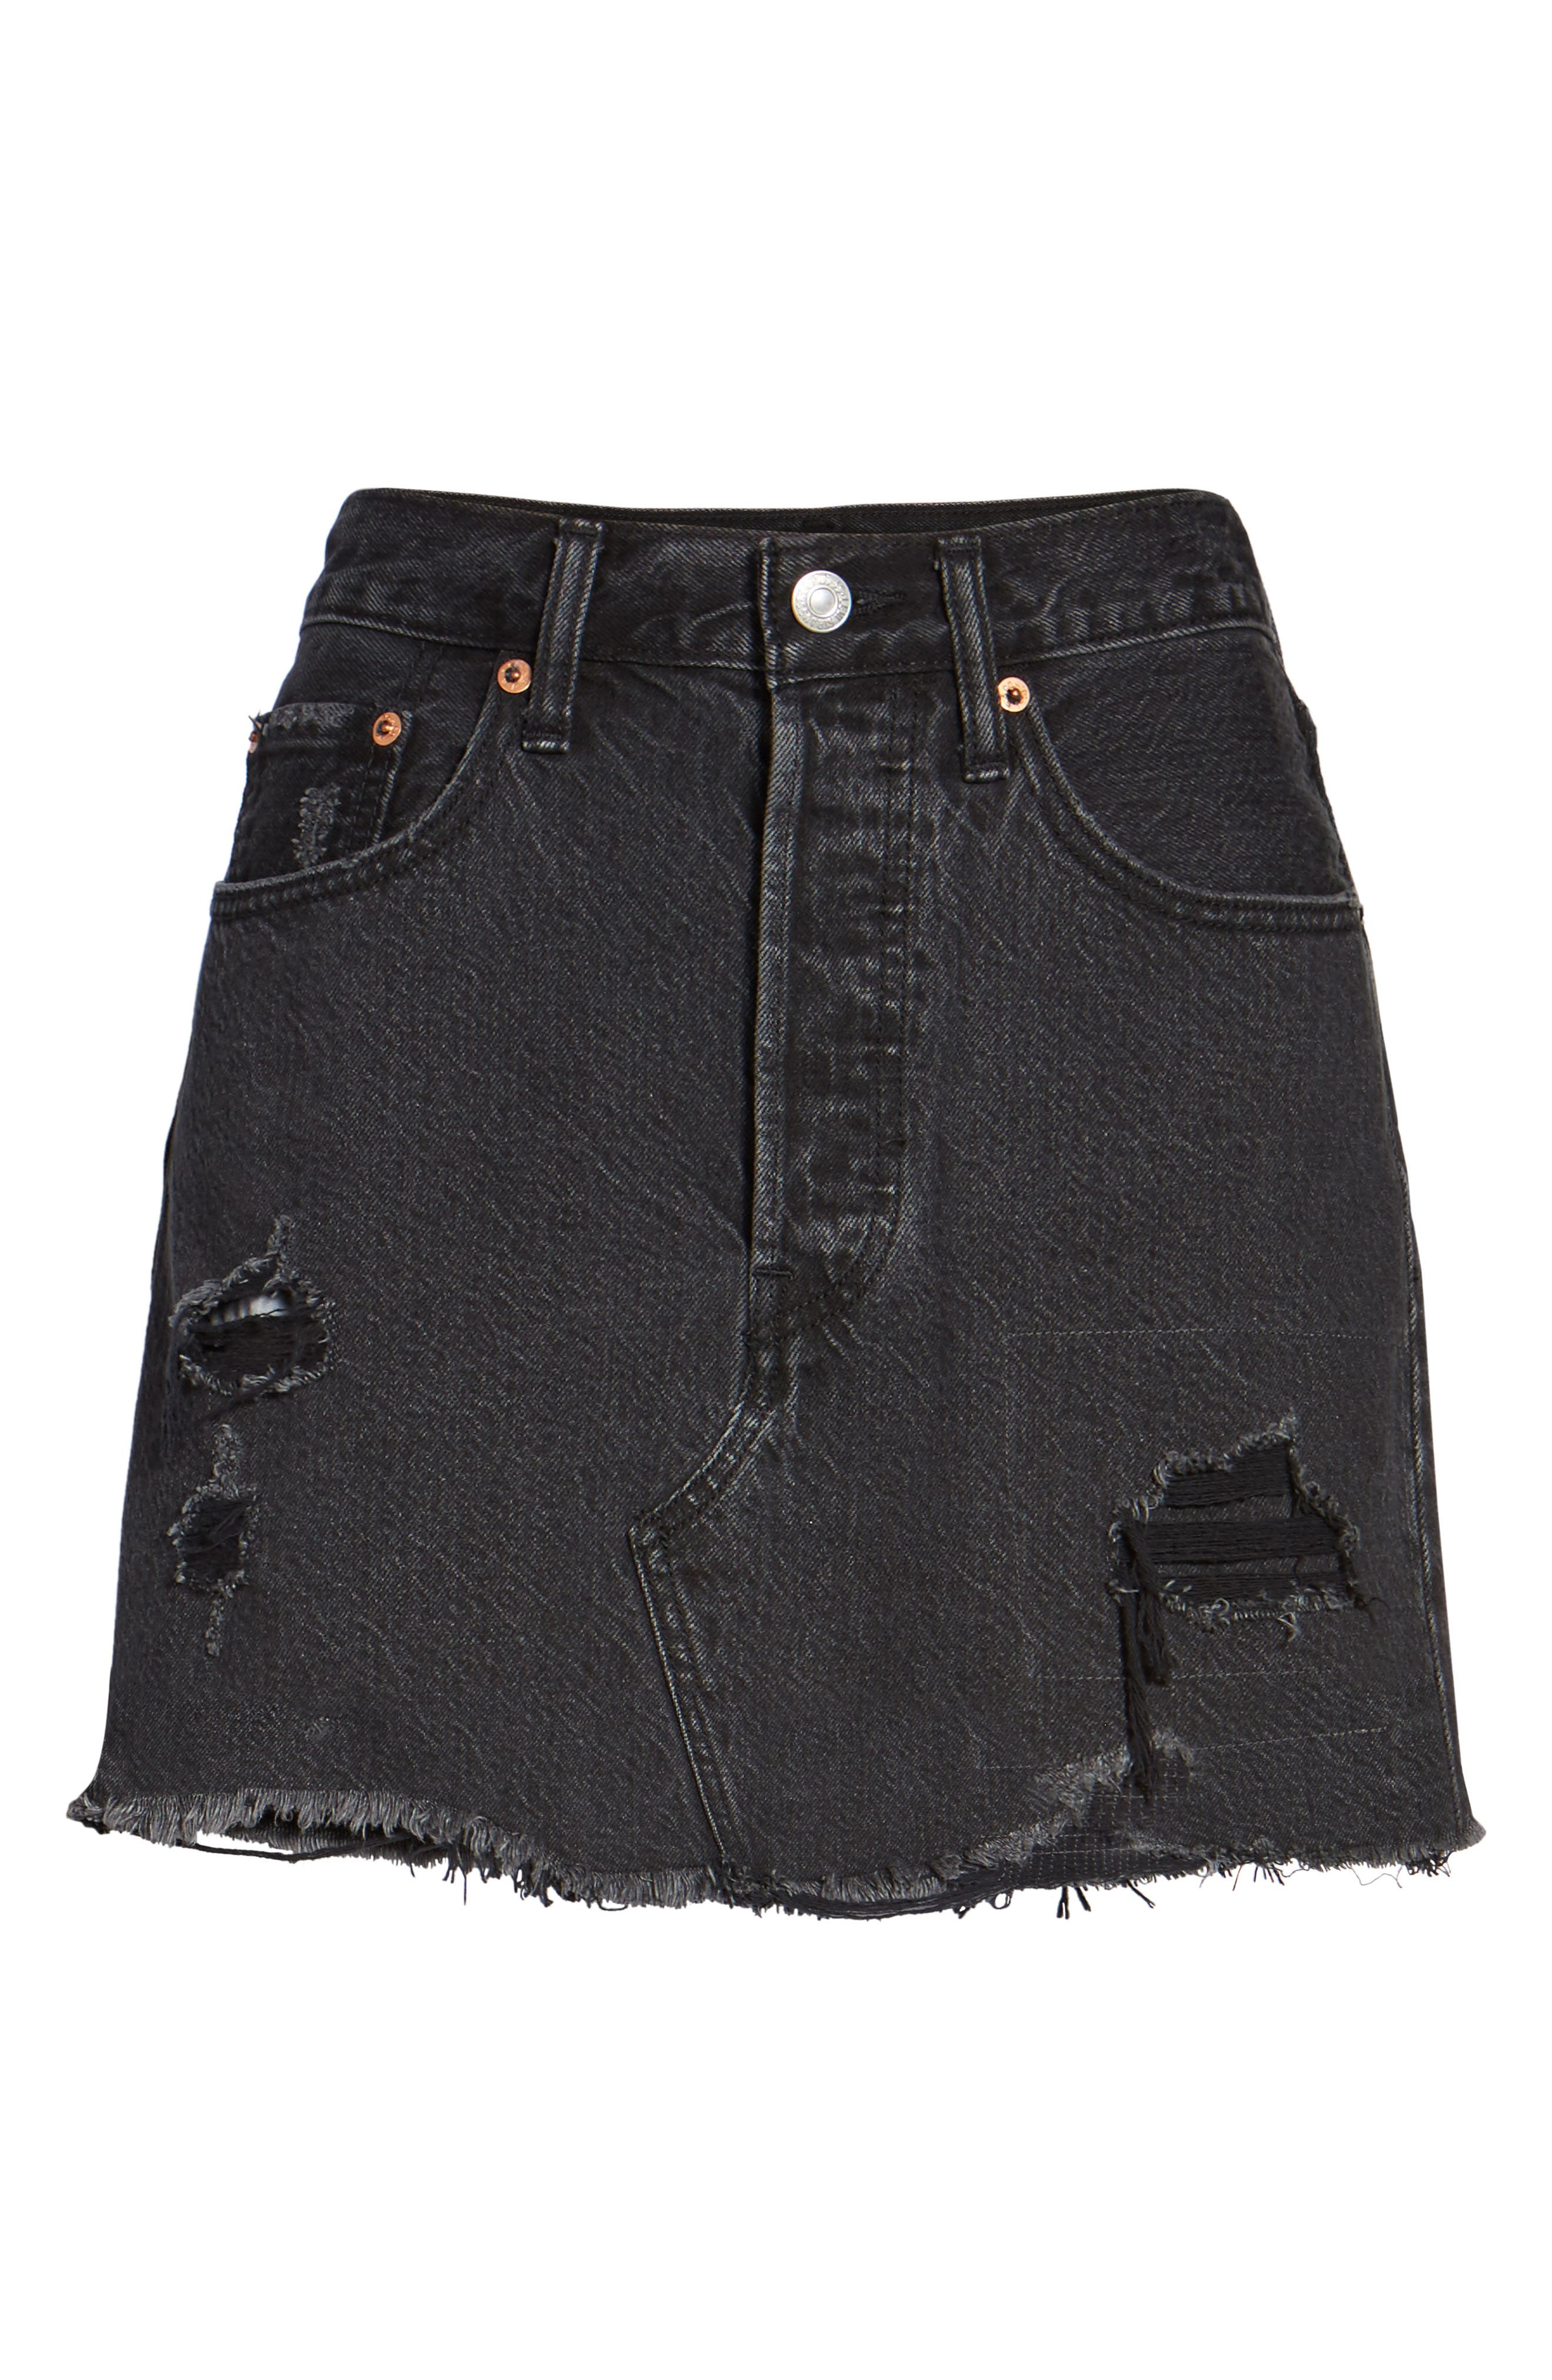 Deconstructed Denim Skirt,                             Alternate thumbnail 7, color,                             001